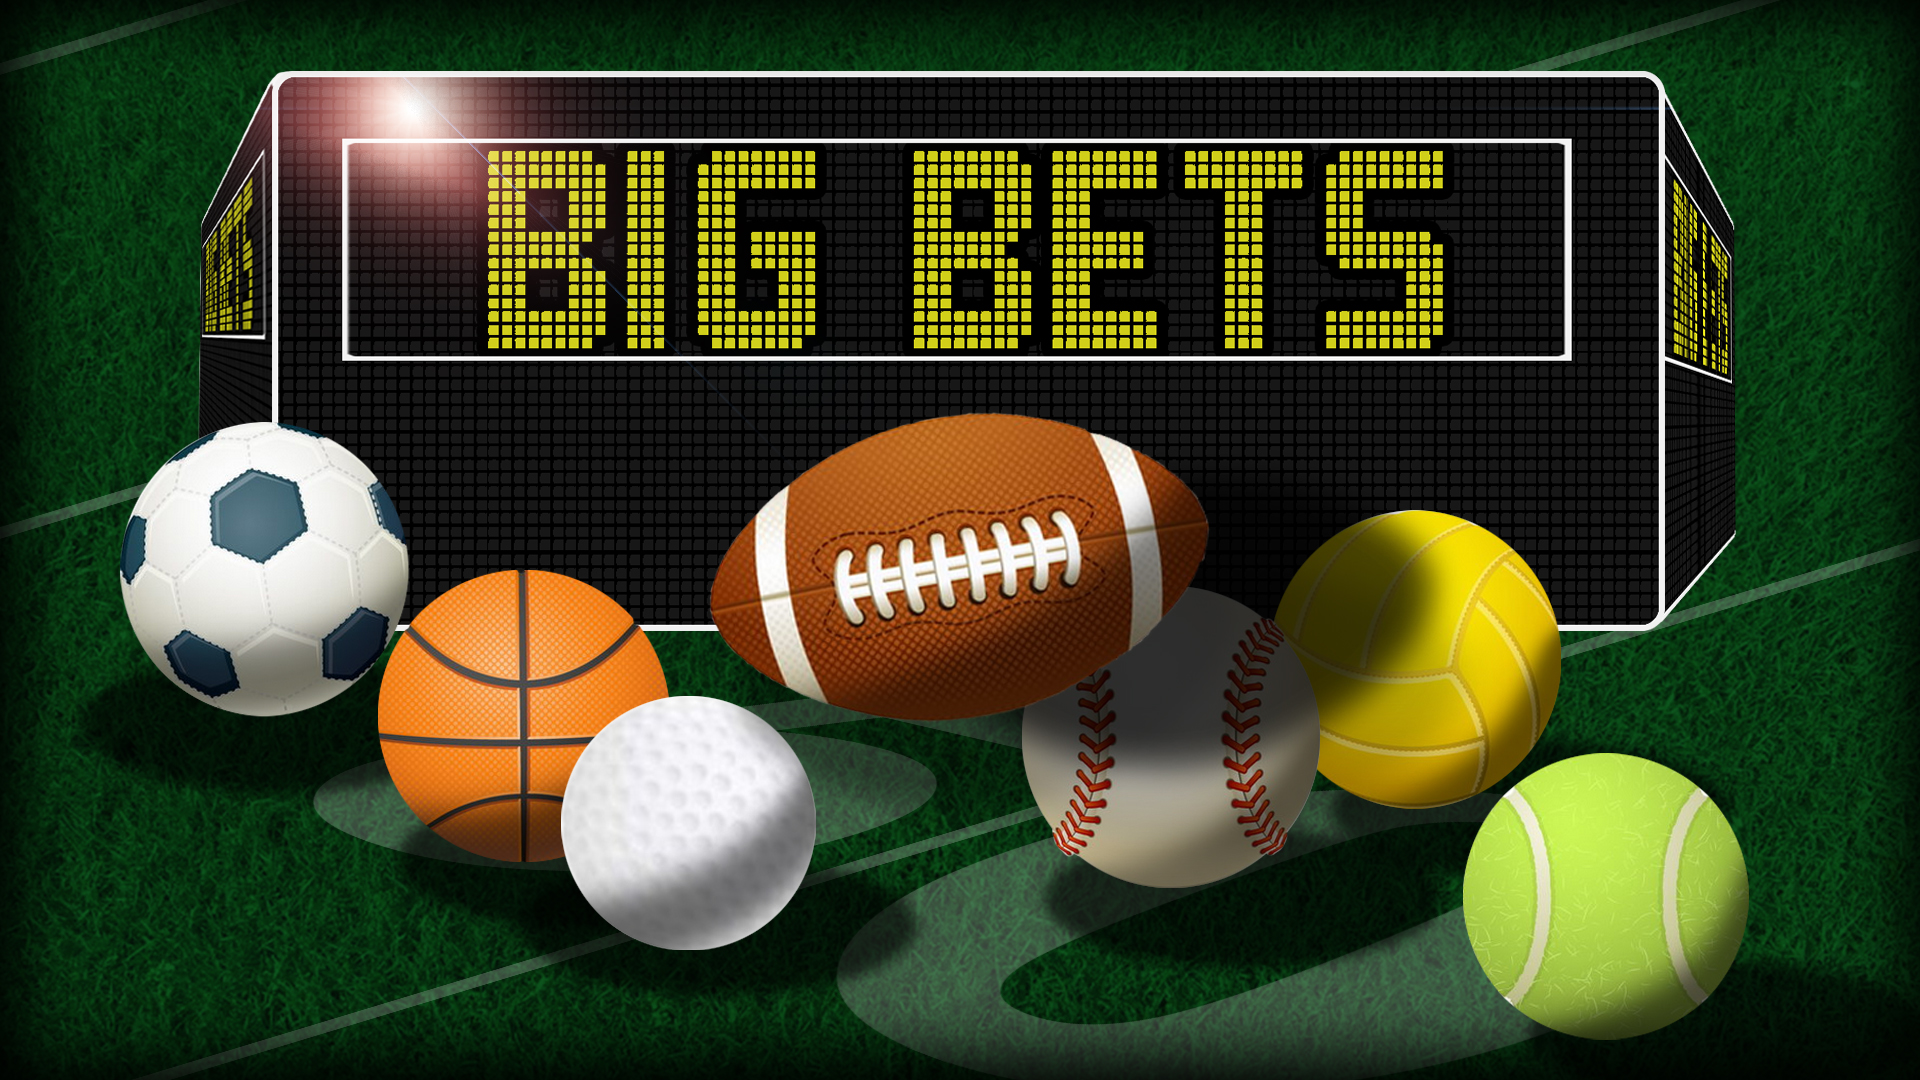 big-bets-mpnotor-sports-2-football-in-middle